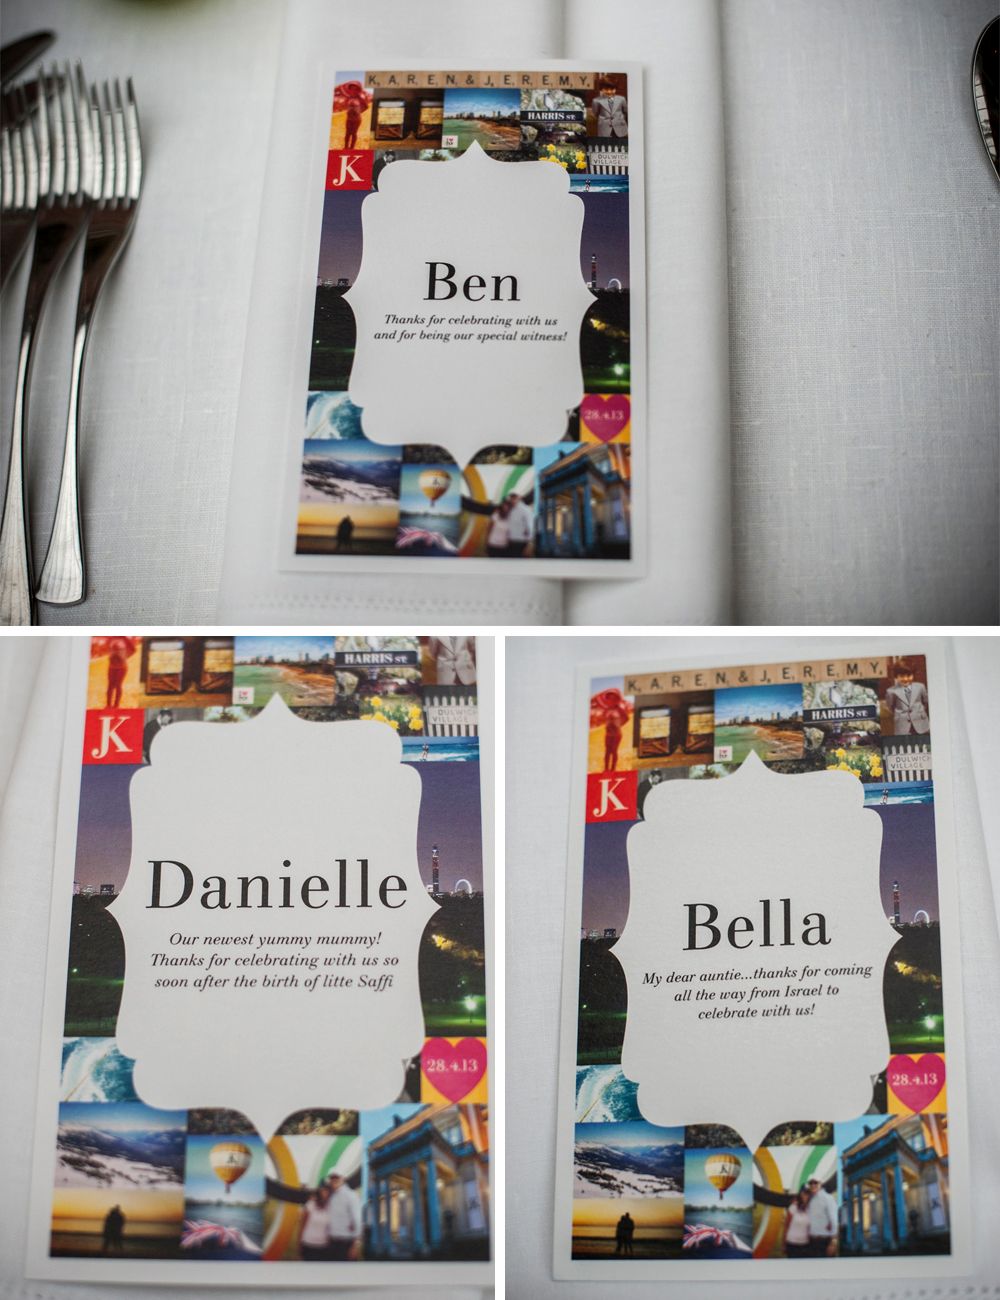 Name cards with a personal message for each guest double up as name cards